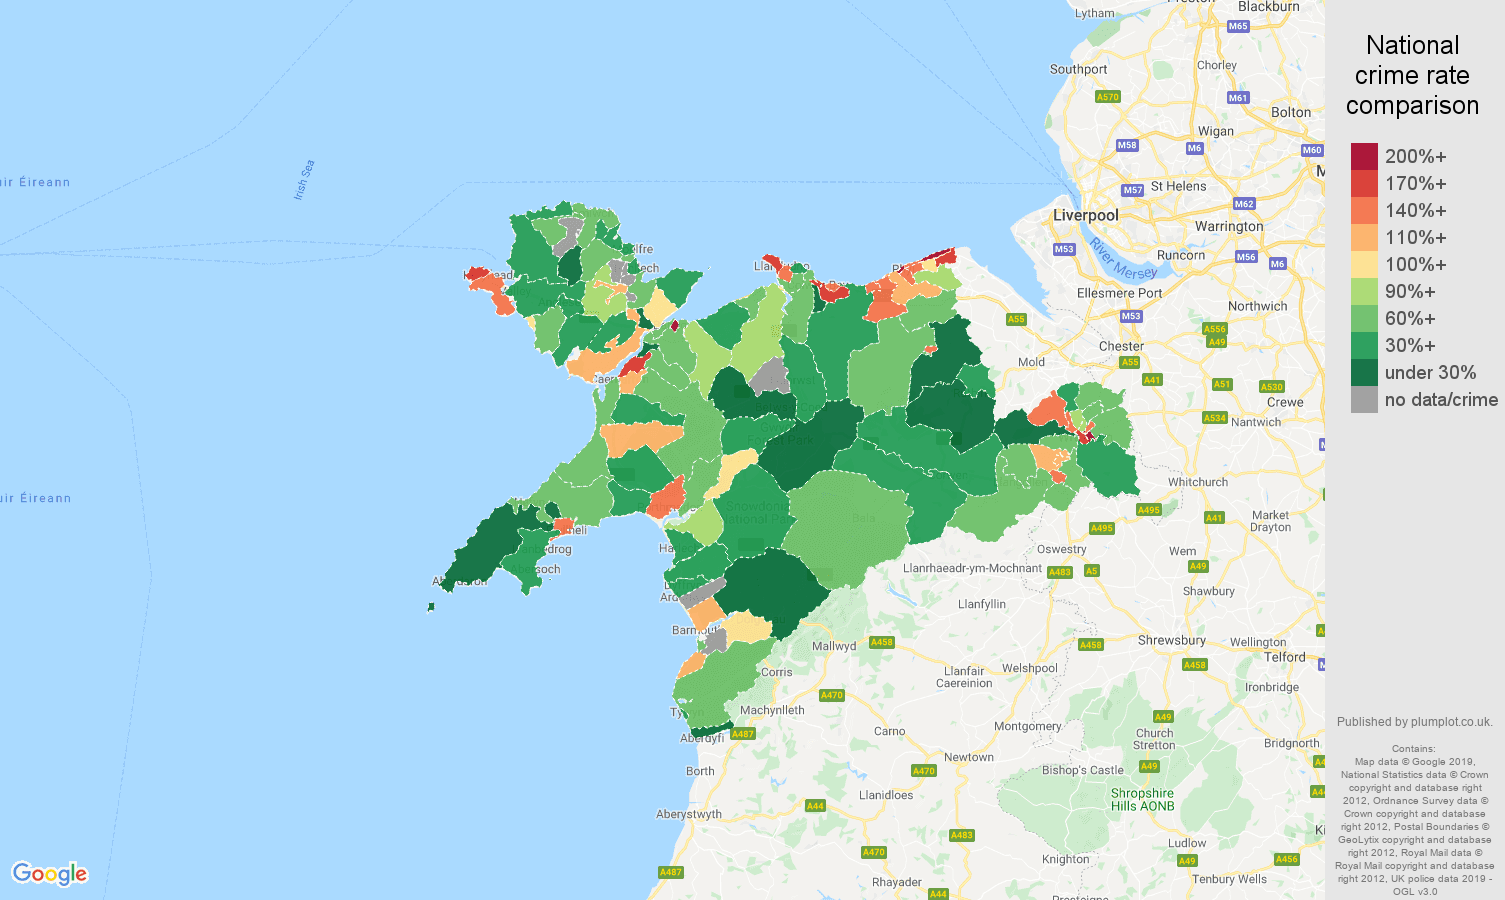 Llandudno public order crime rate comparison map